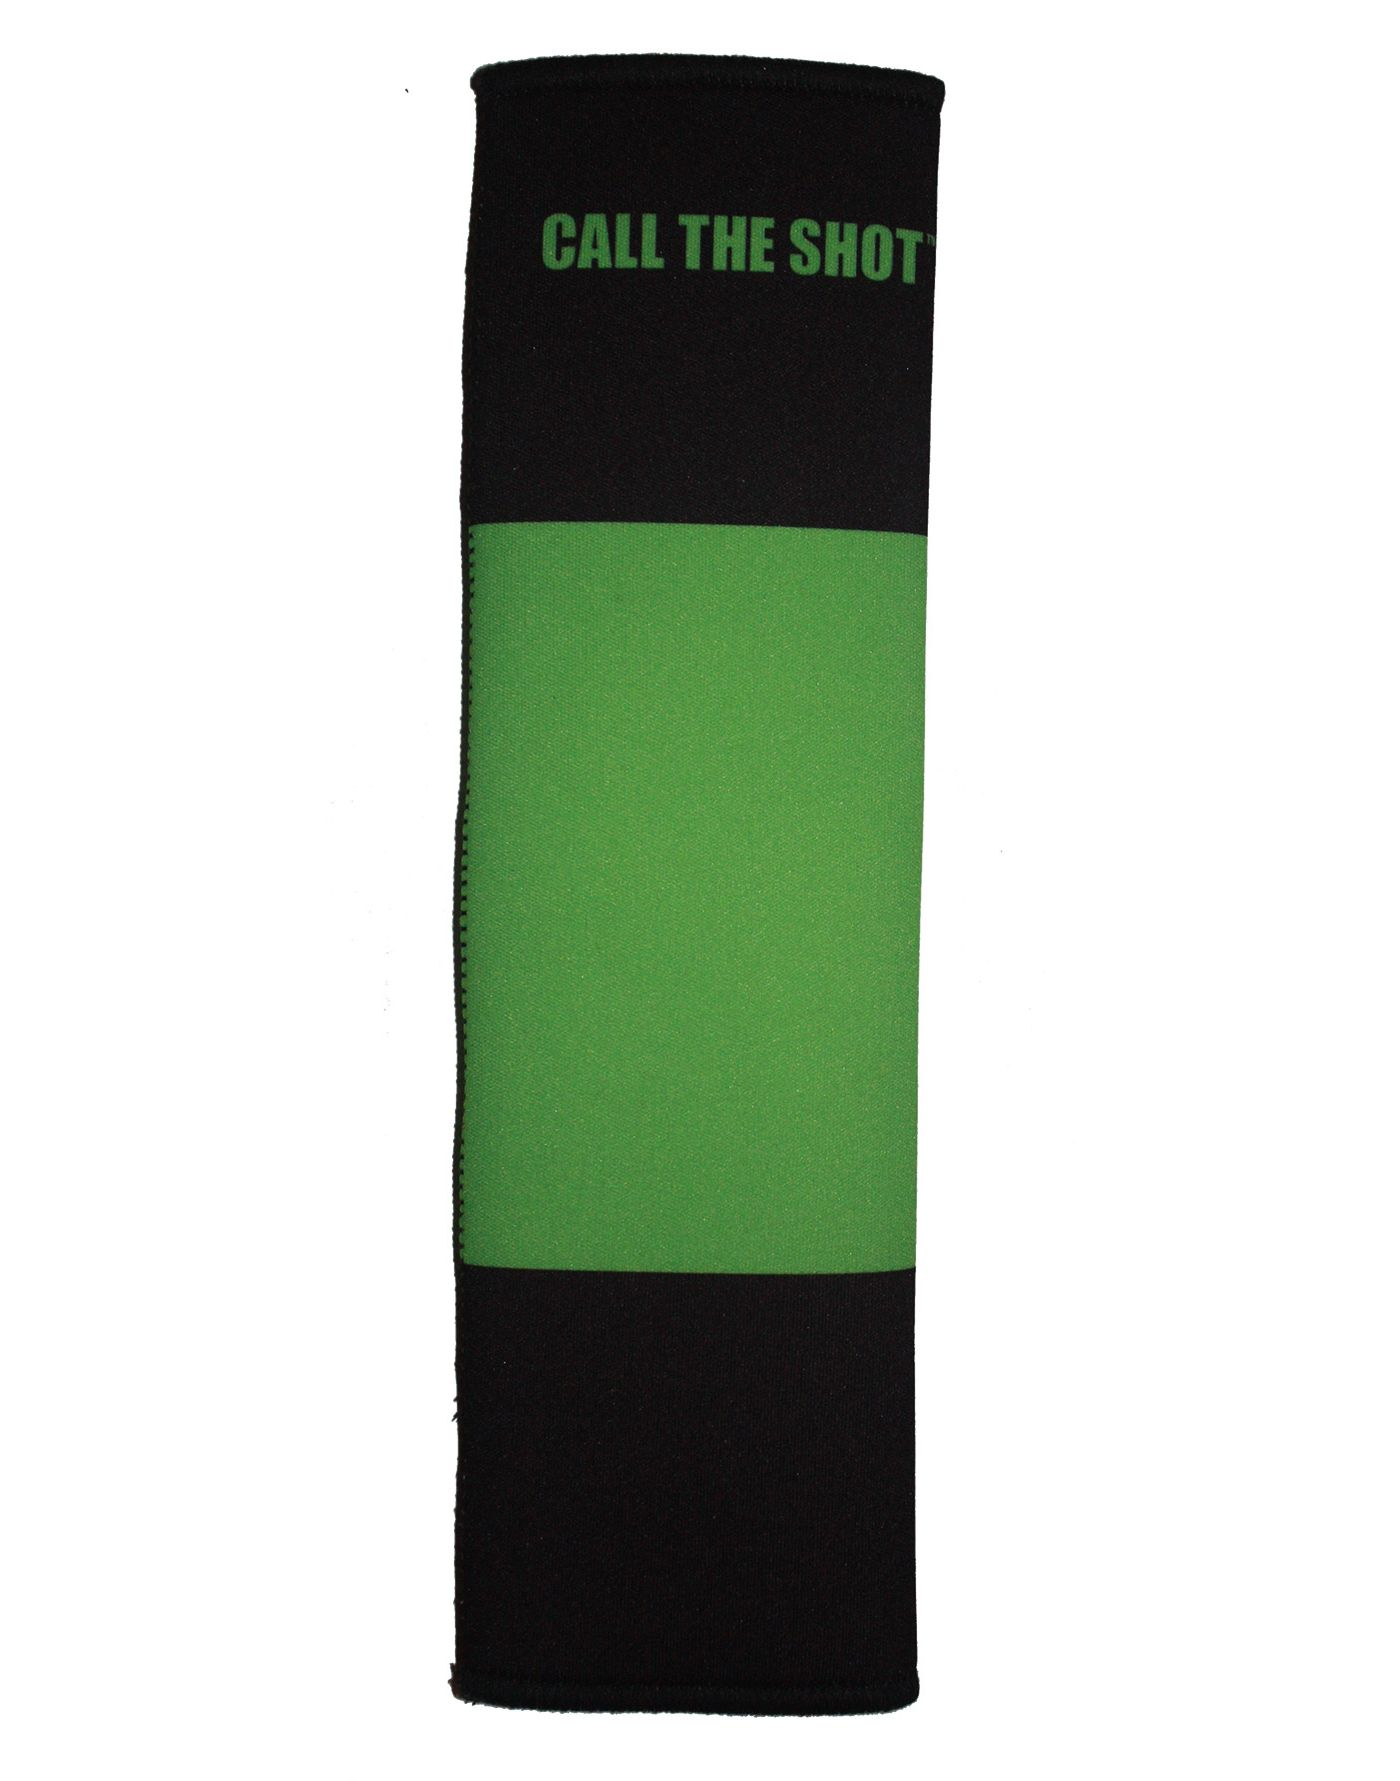 Call The Shot Softball Batting Aid